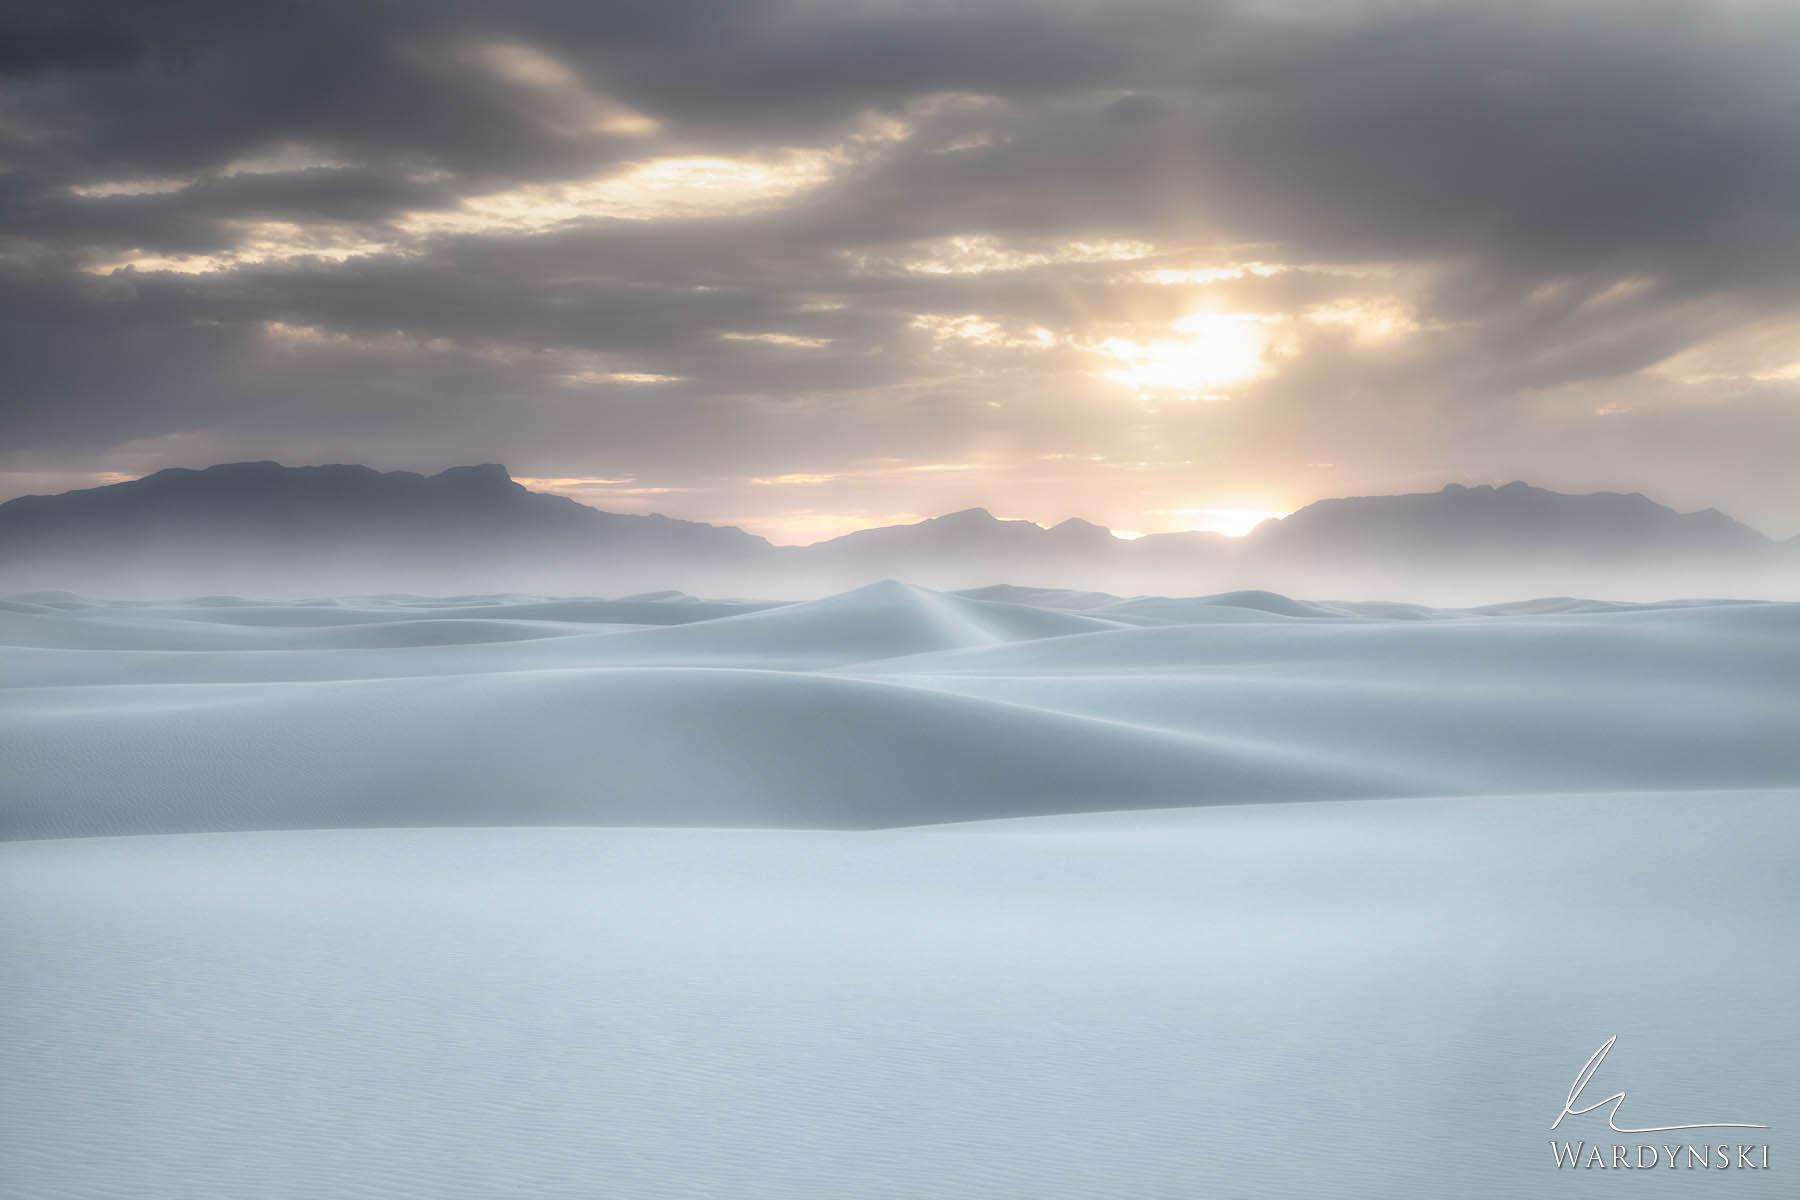 Fine Art Print | Limited Edition of 100 Sun rays burst through a cloudy sky during sunset in White Sands National Park, New Mexico...